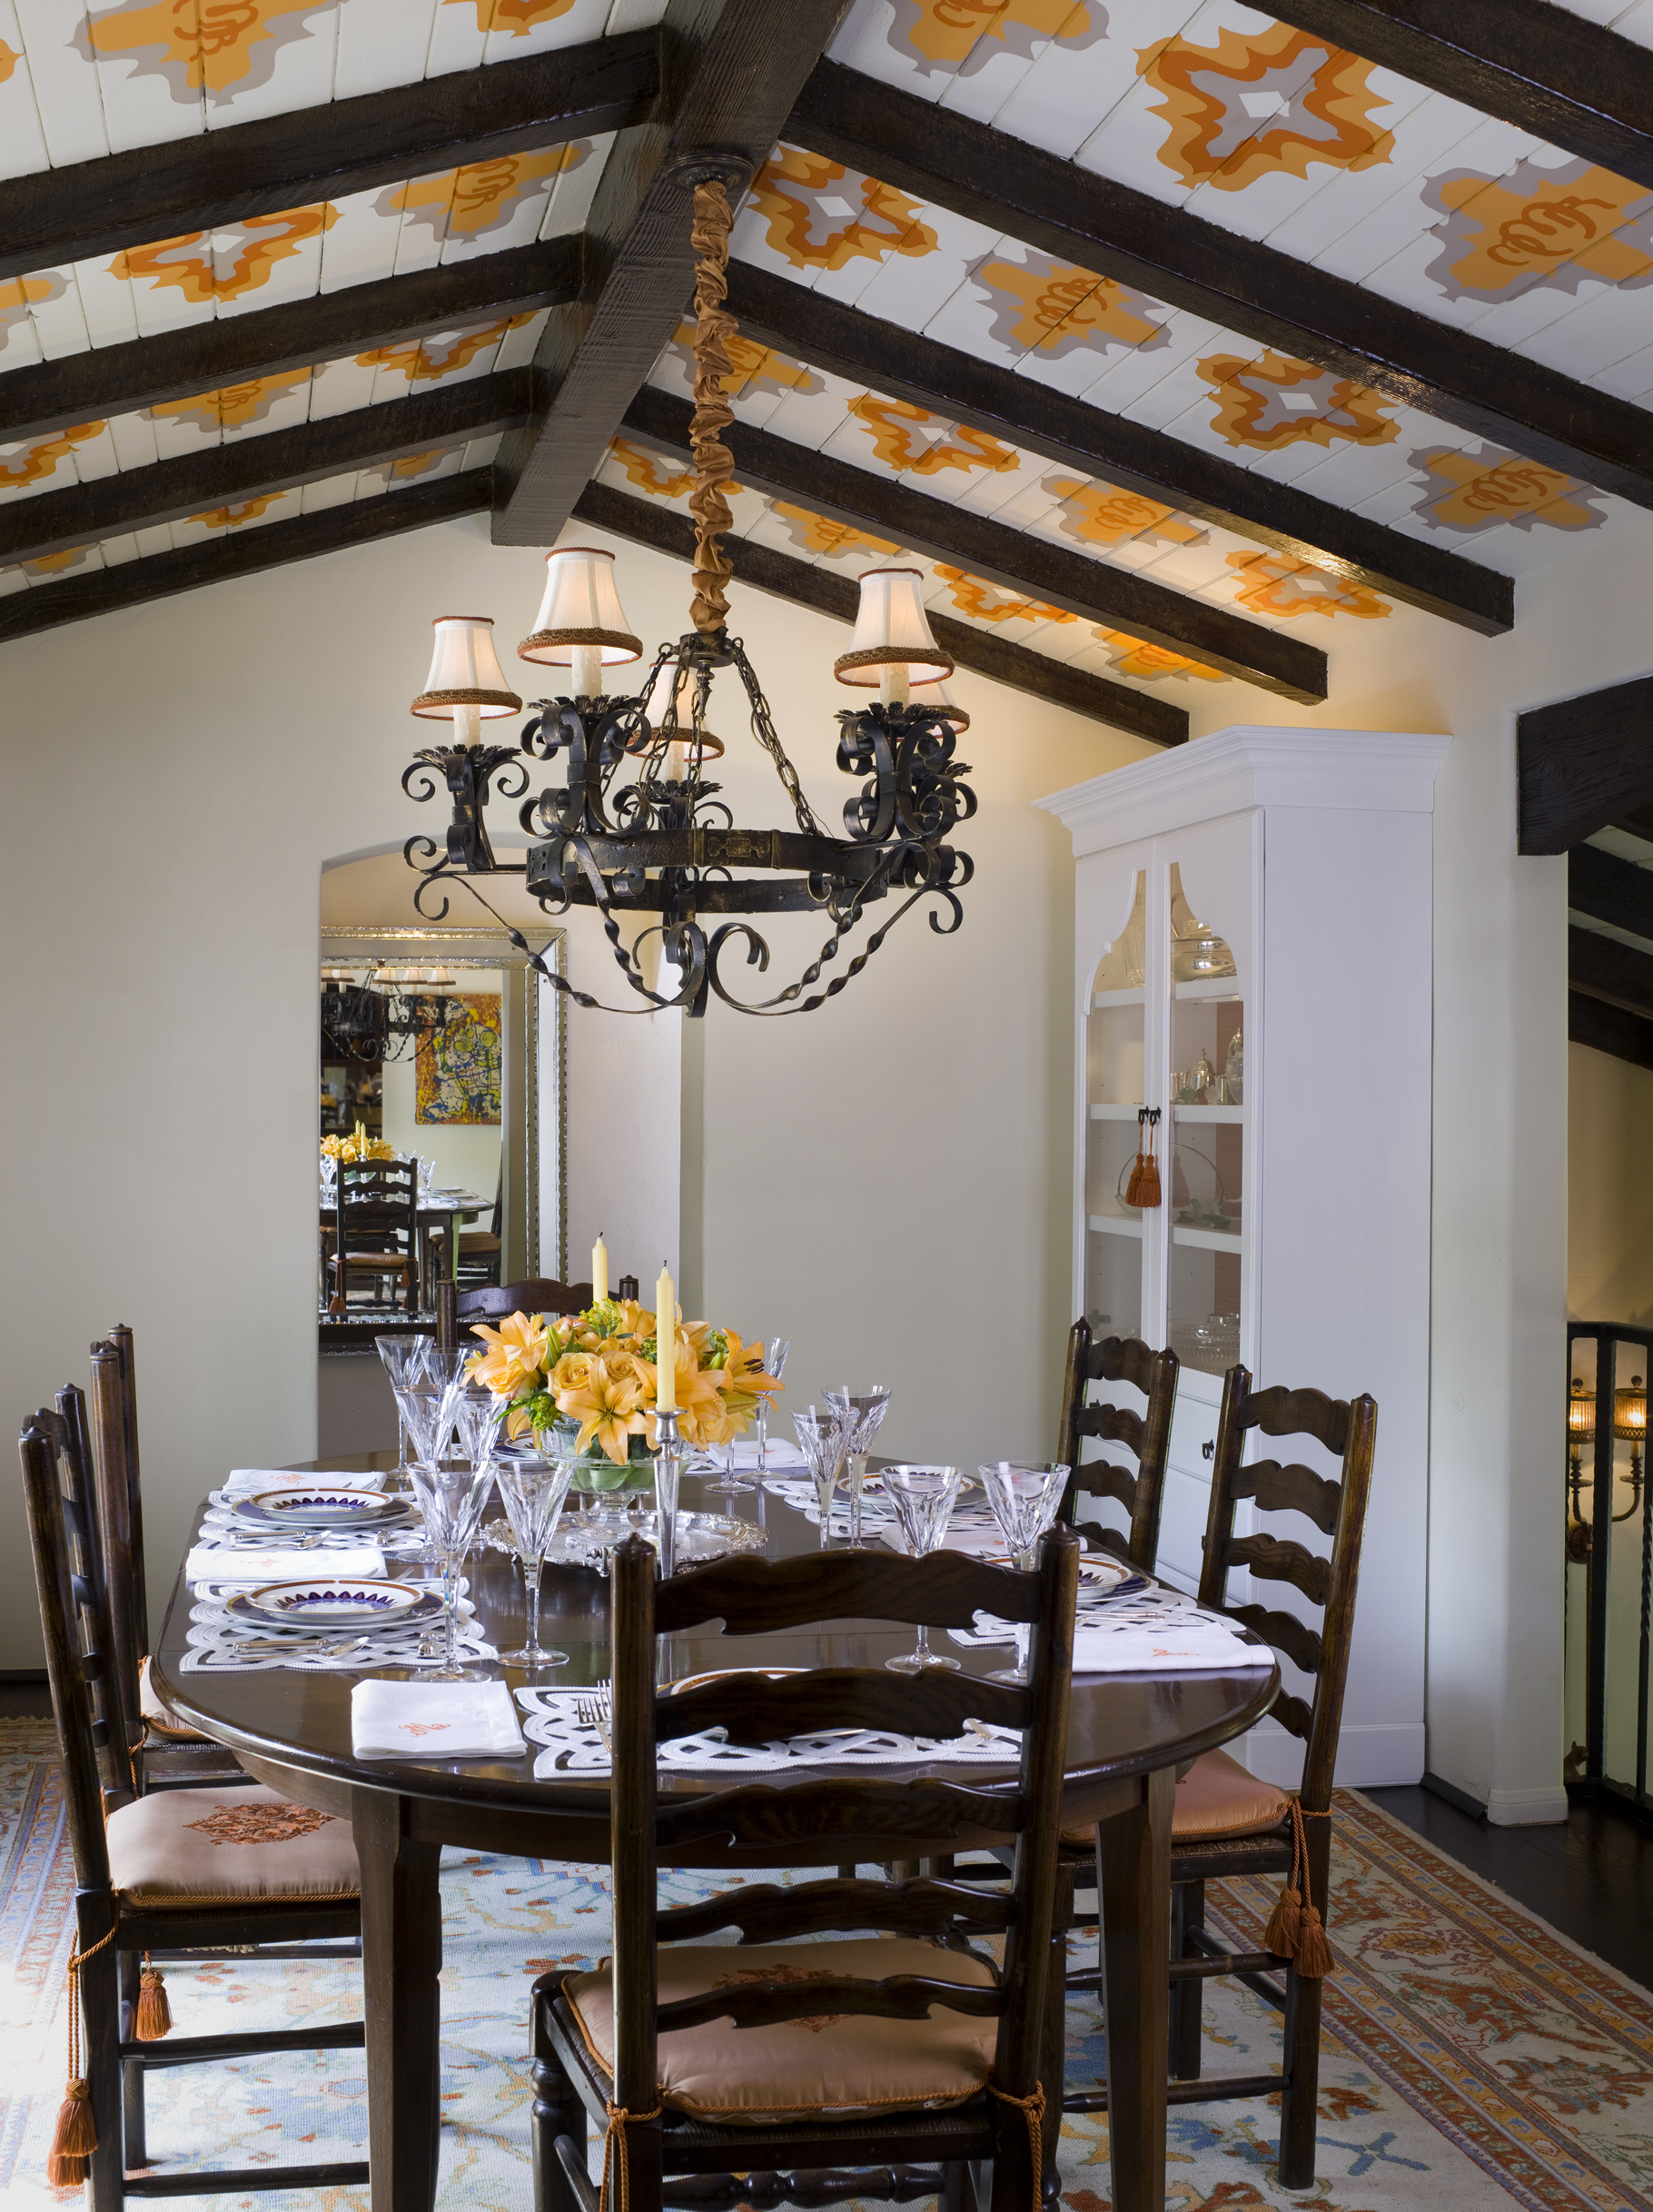 Ceiling Detail in Spanish dining room